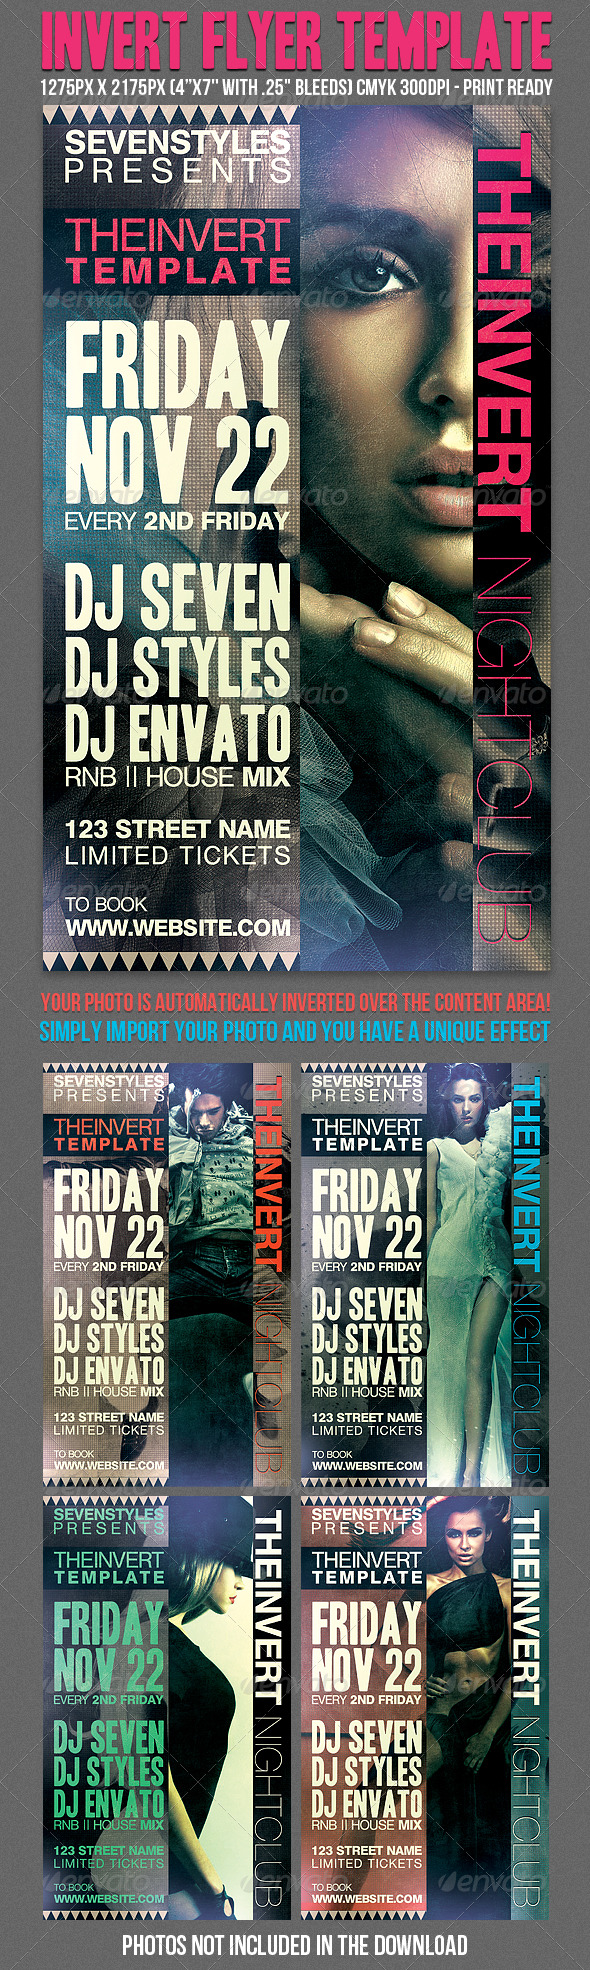 Invert Flyer Template - Clubs & Parties Events